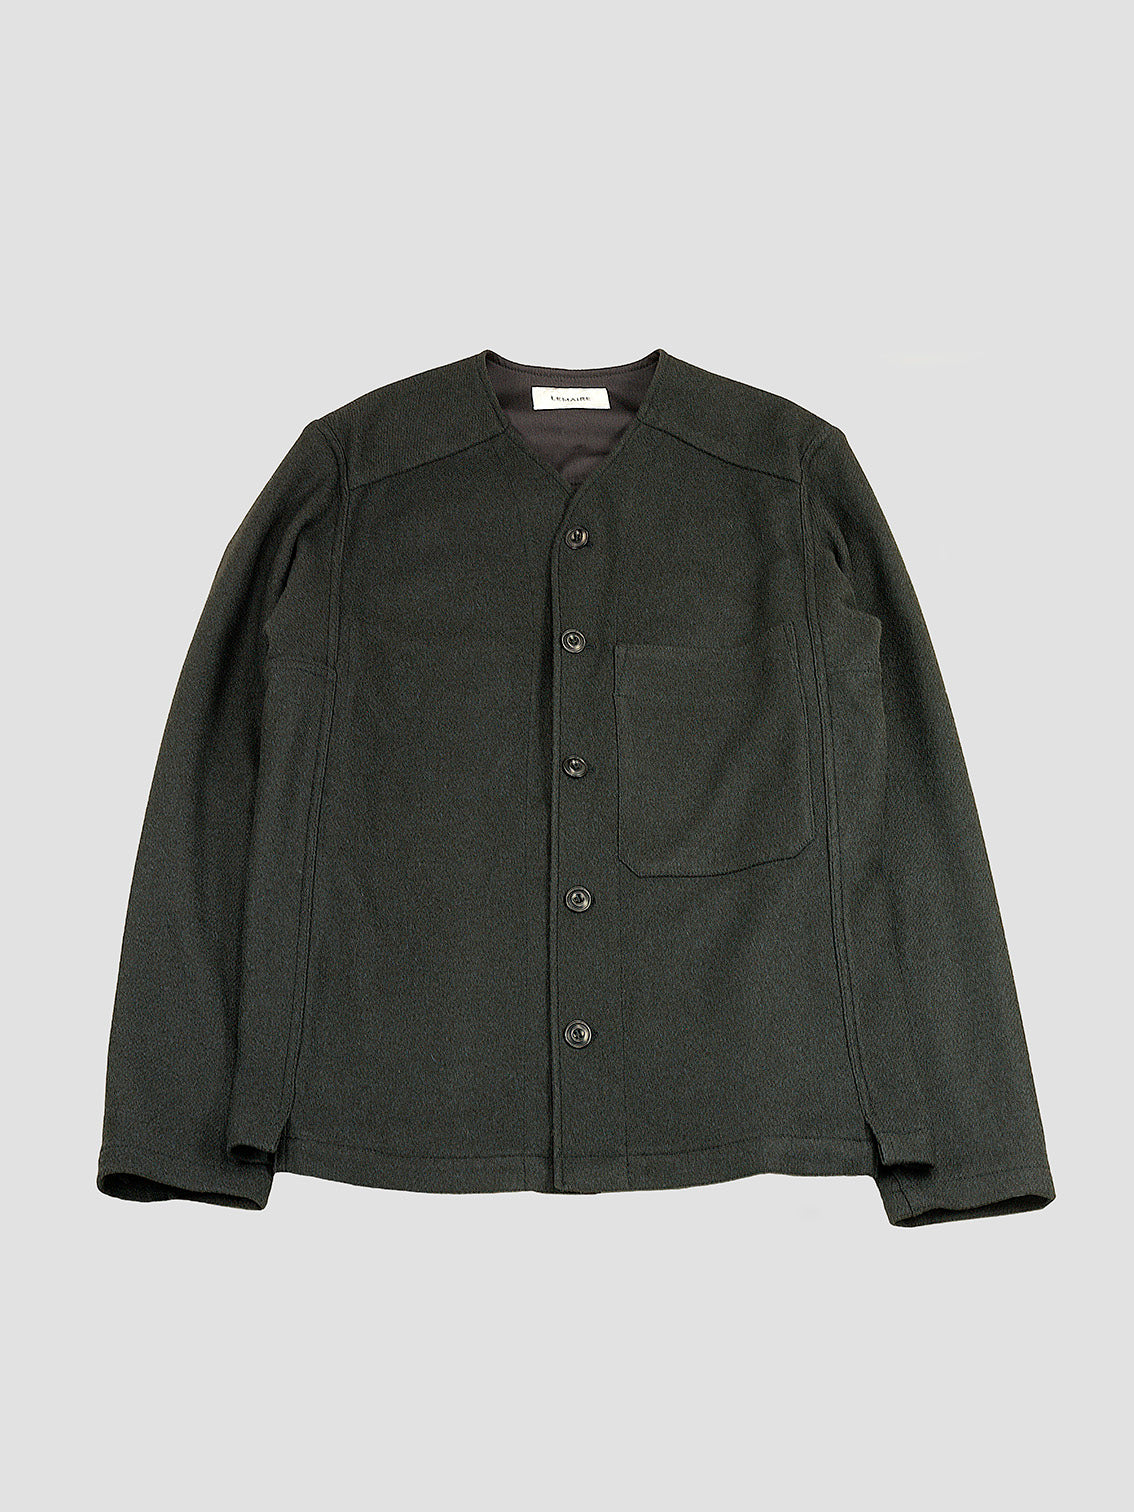 V-neck jacket by Lemaire